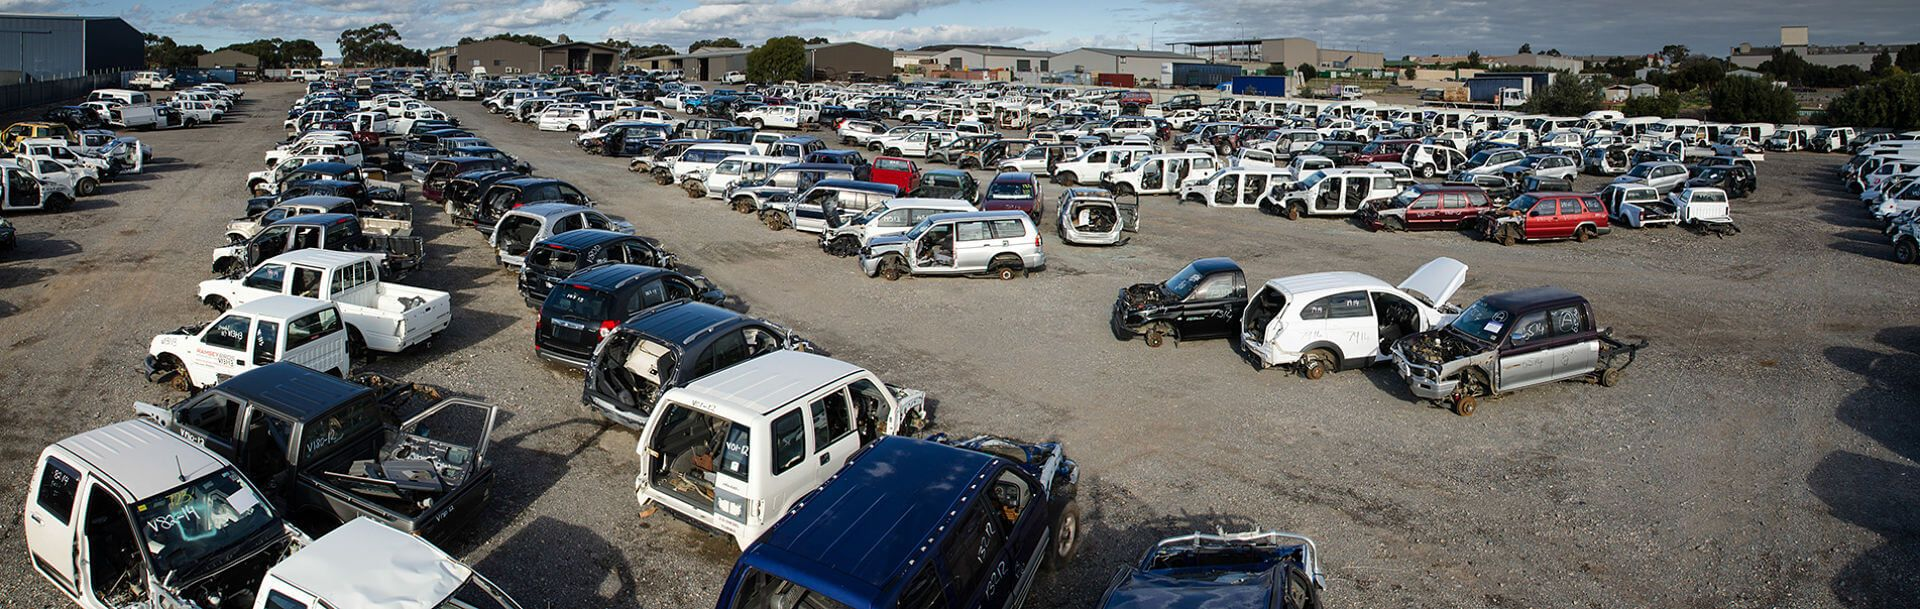 Auto Wreckers Toowoomba Junk Car Removals Toowoomba Cash For Car